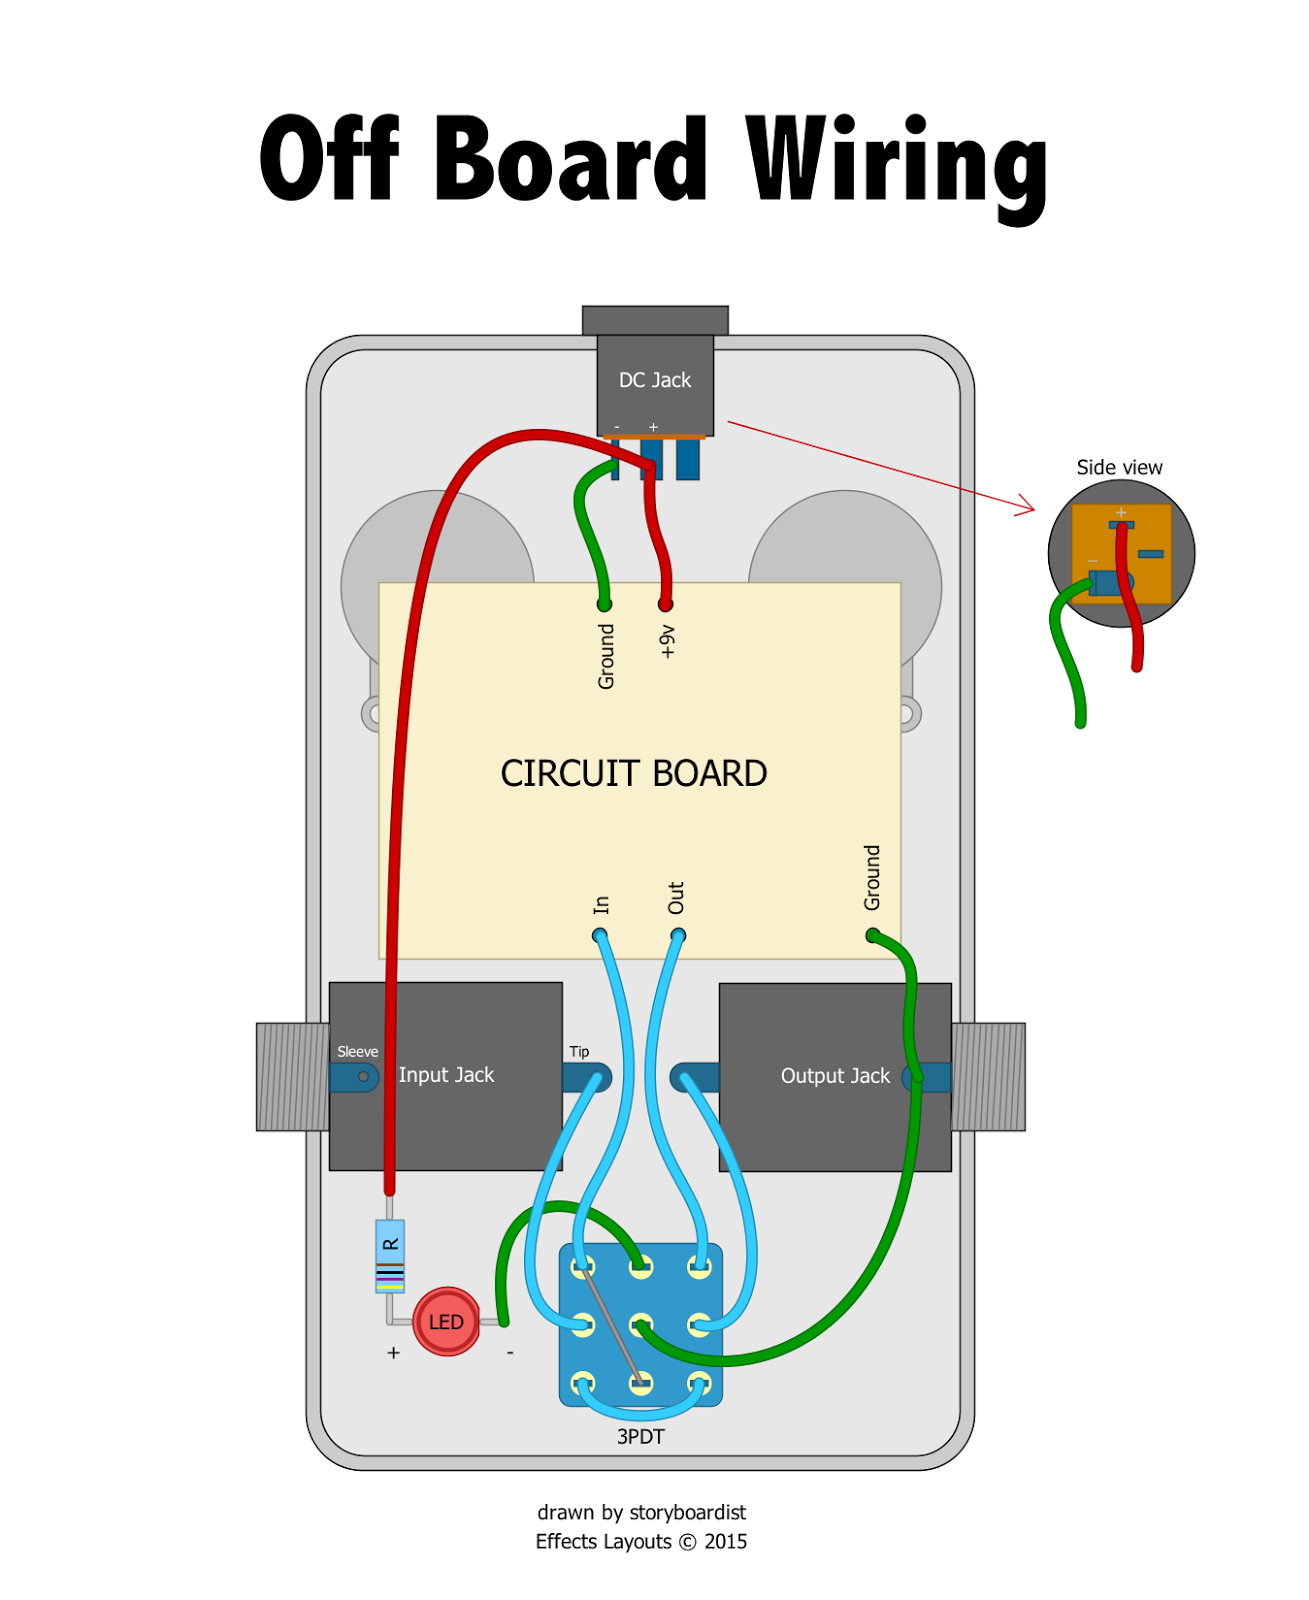 Perf and PCB Effects Layouts: General Layout Notes